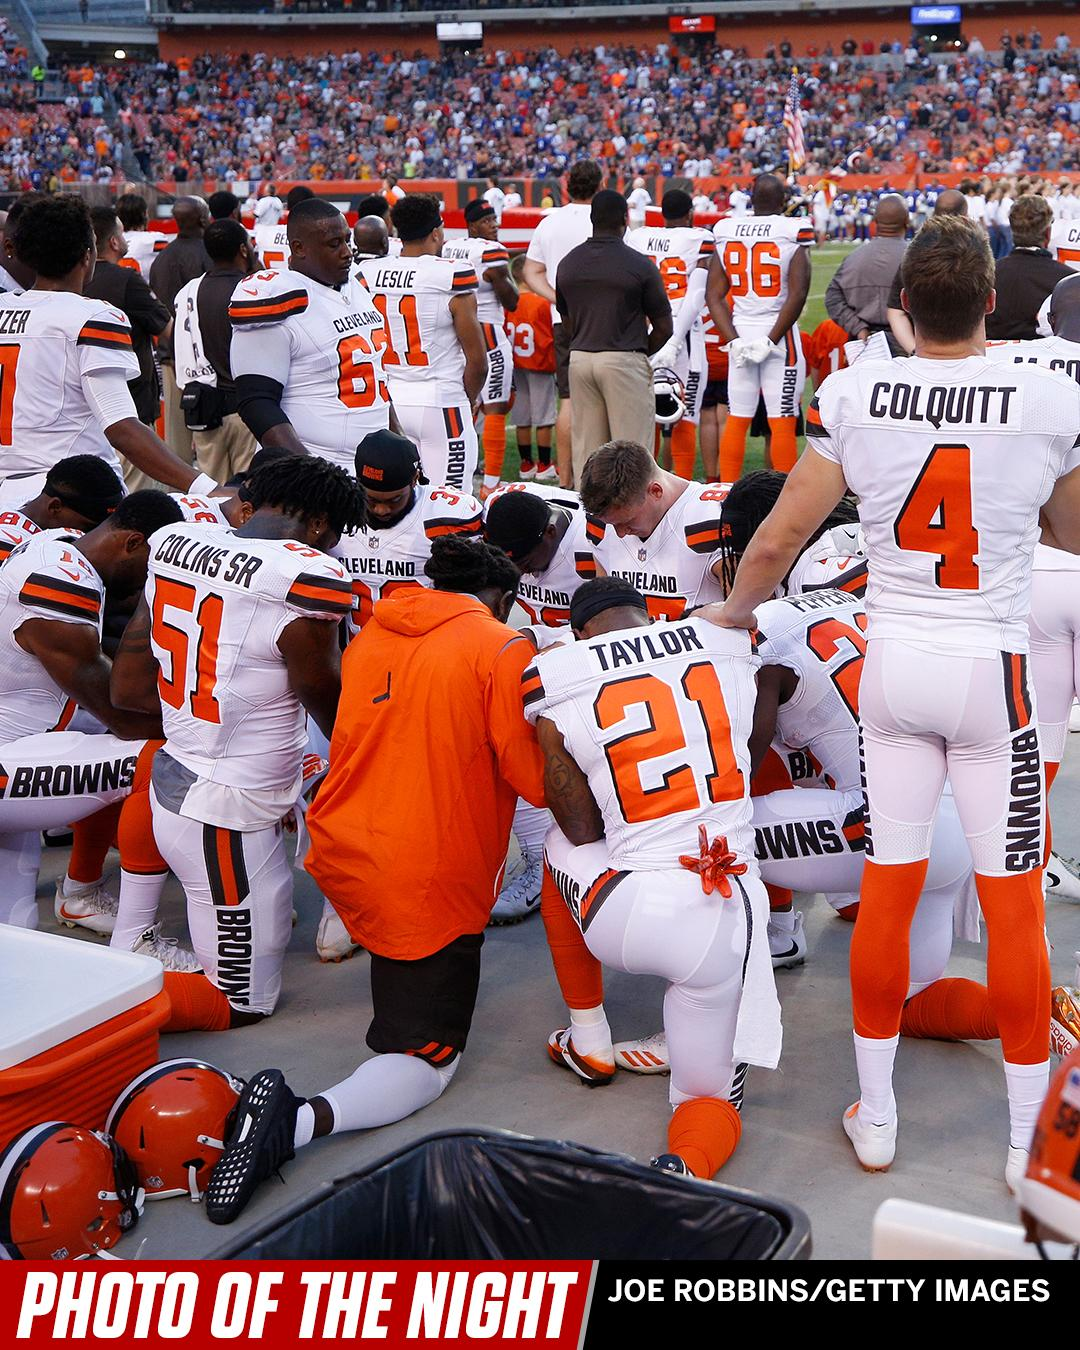 12 Browns players knelt in prayer during the playing of the national anthem on Monday night. #PhotoOfTheNight https://t.co/xT2Tl9U1Pc